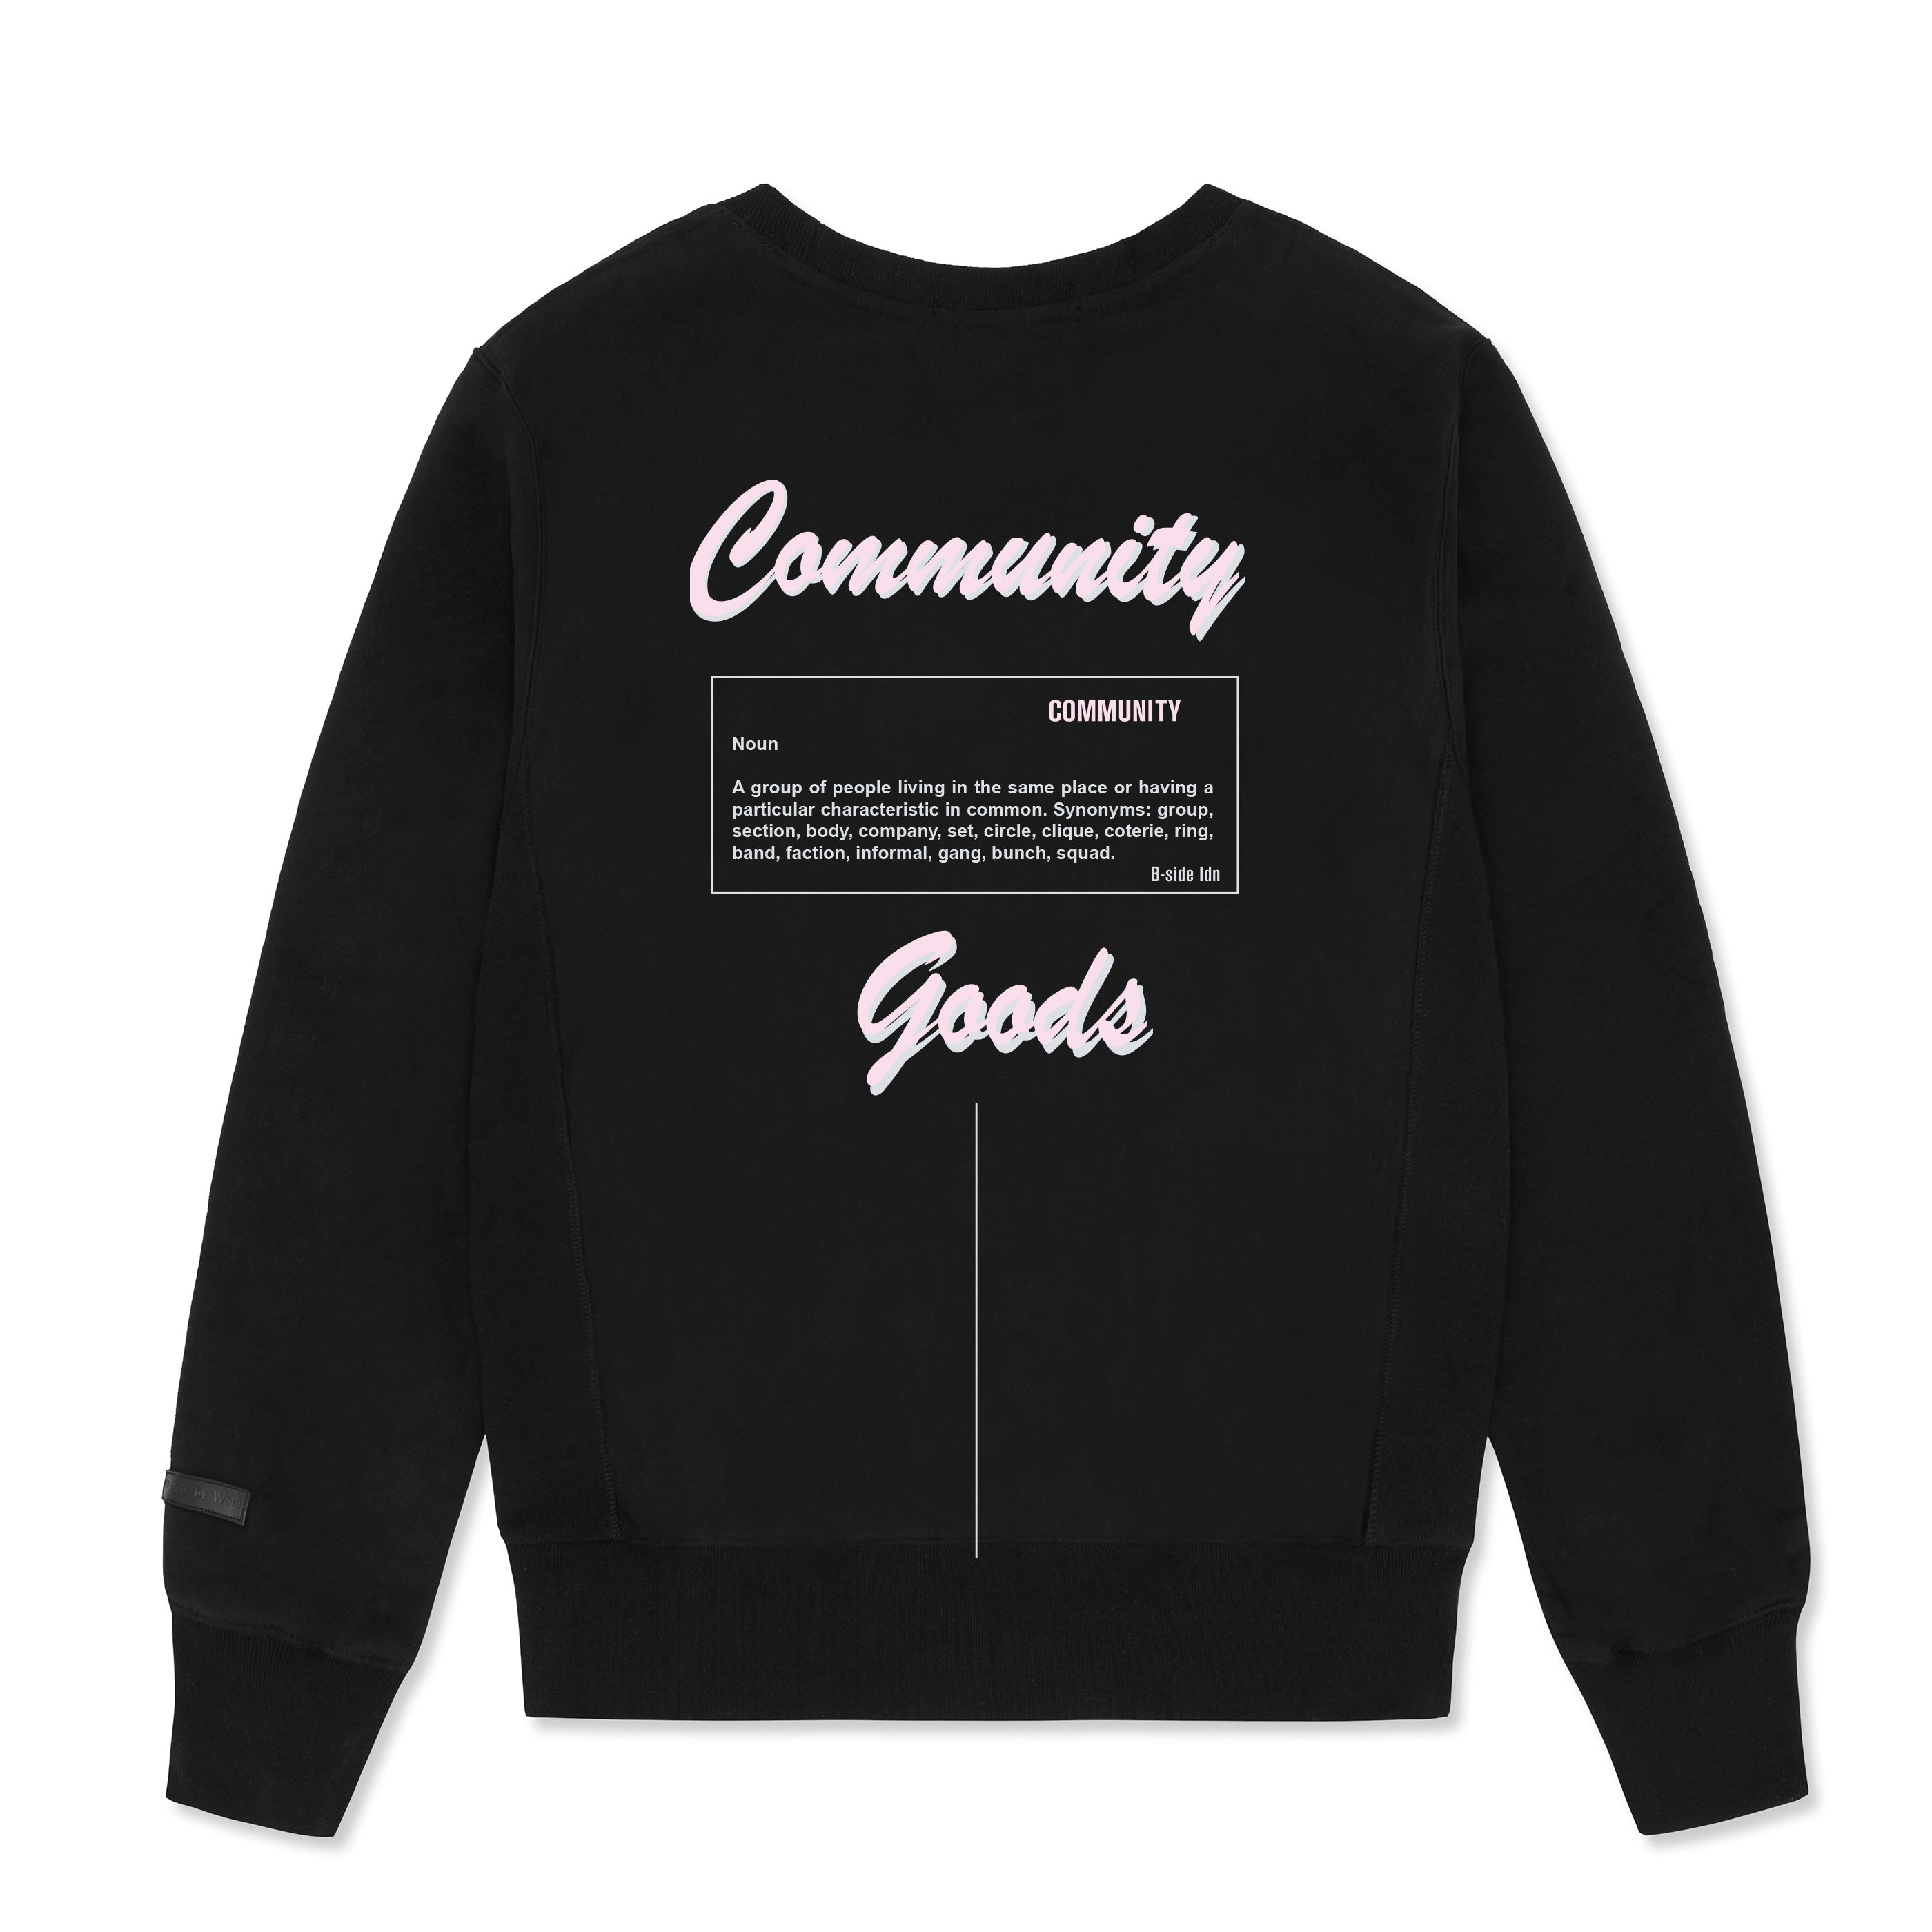 WOMEN'S CREWNECK COMMUNITY HEAVY SWEAT | PINK LOGO | B-sidebywale